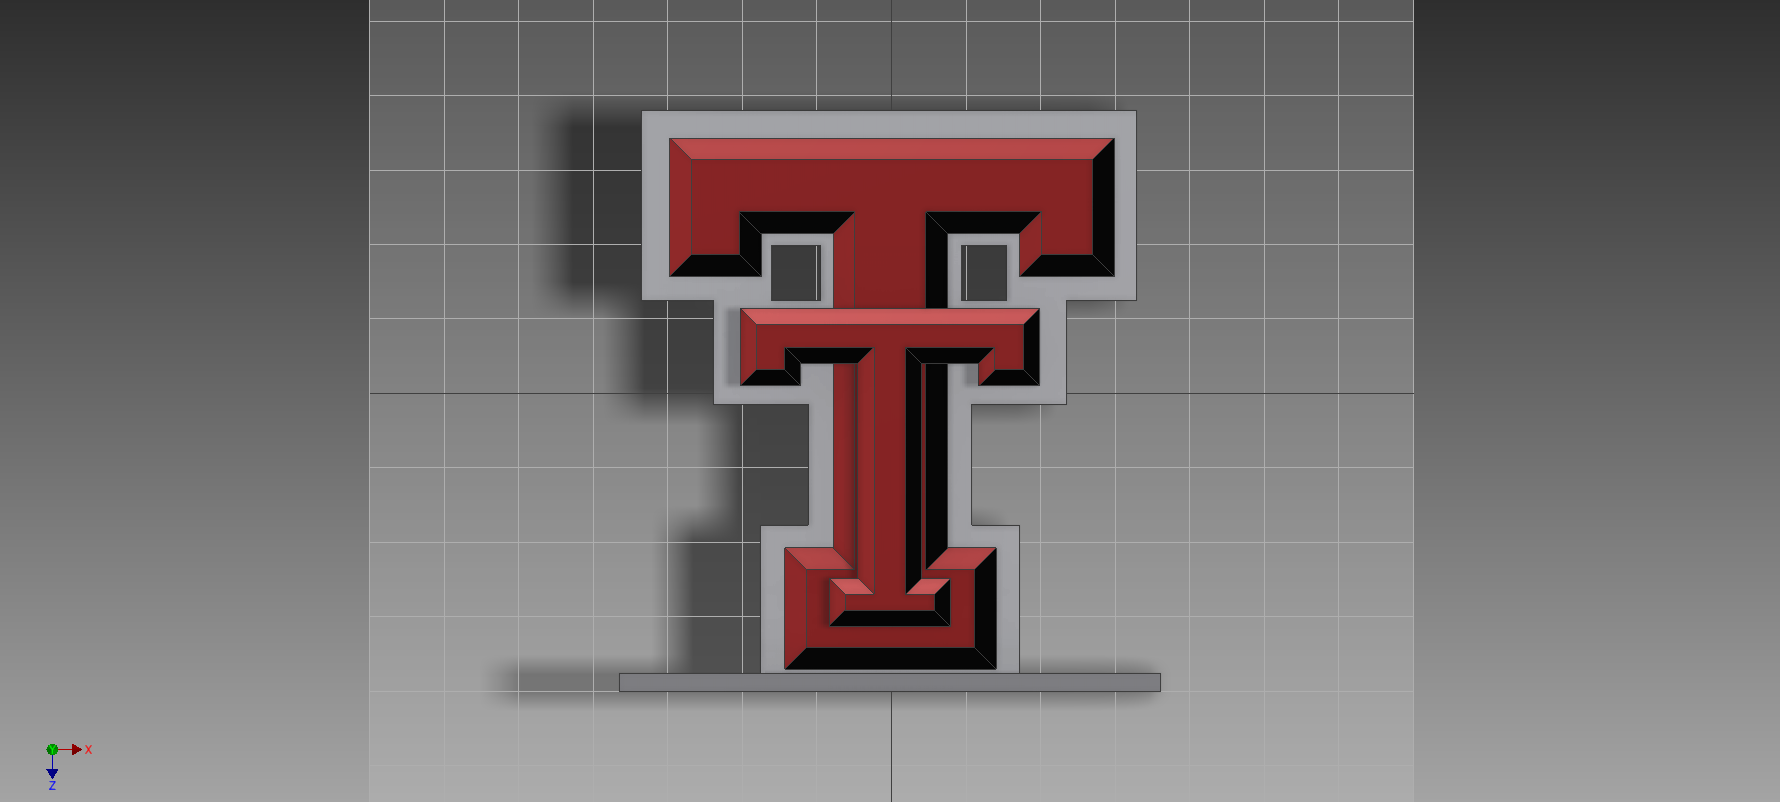 Texas Tech University Logo By Geek115 Thingiverse